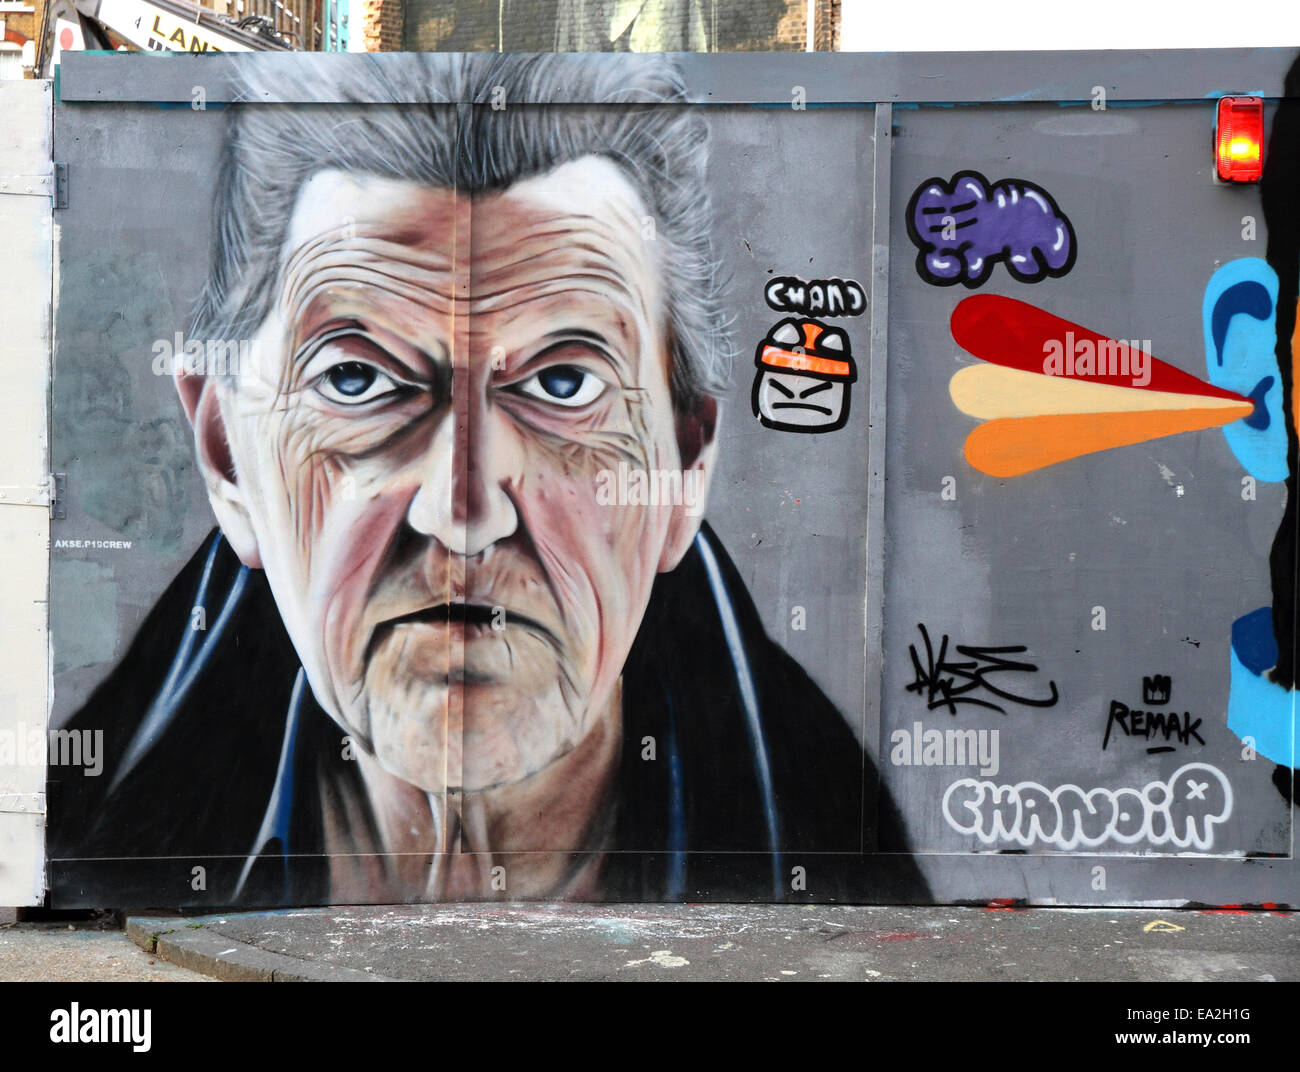 7 feet high portrait of a mans face on street hoarding in East London, England - Stock Image